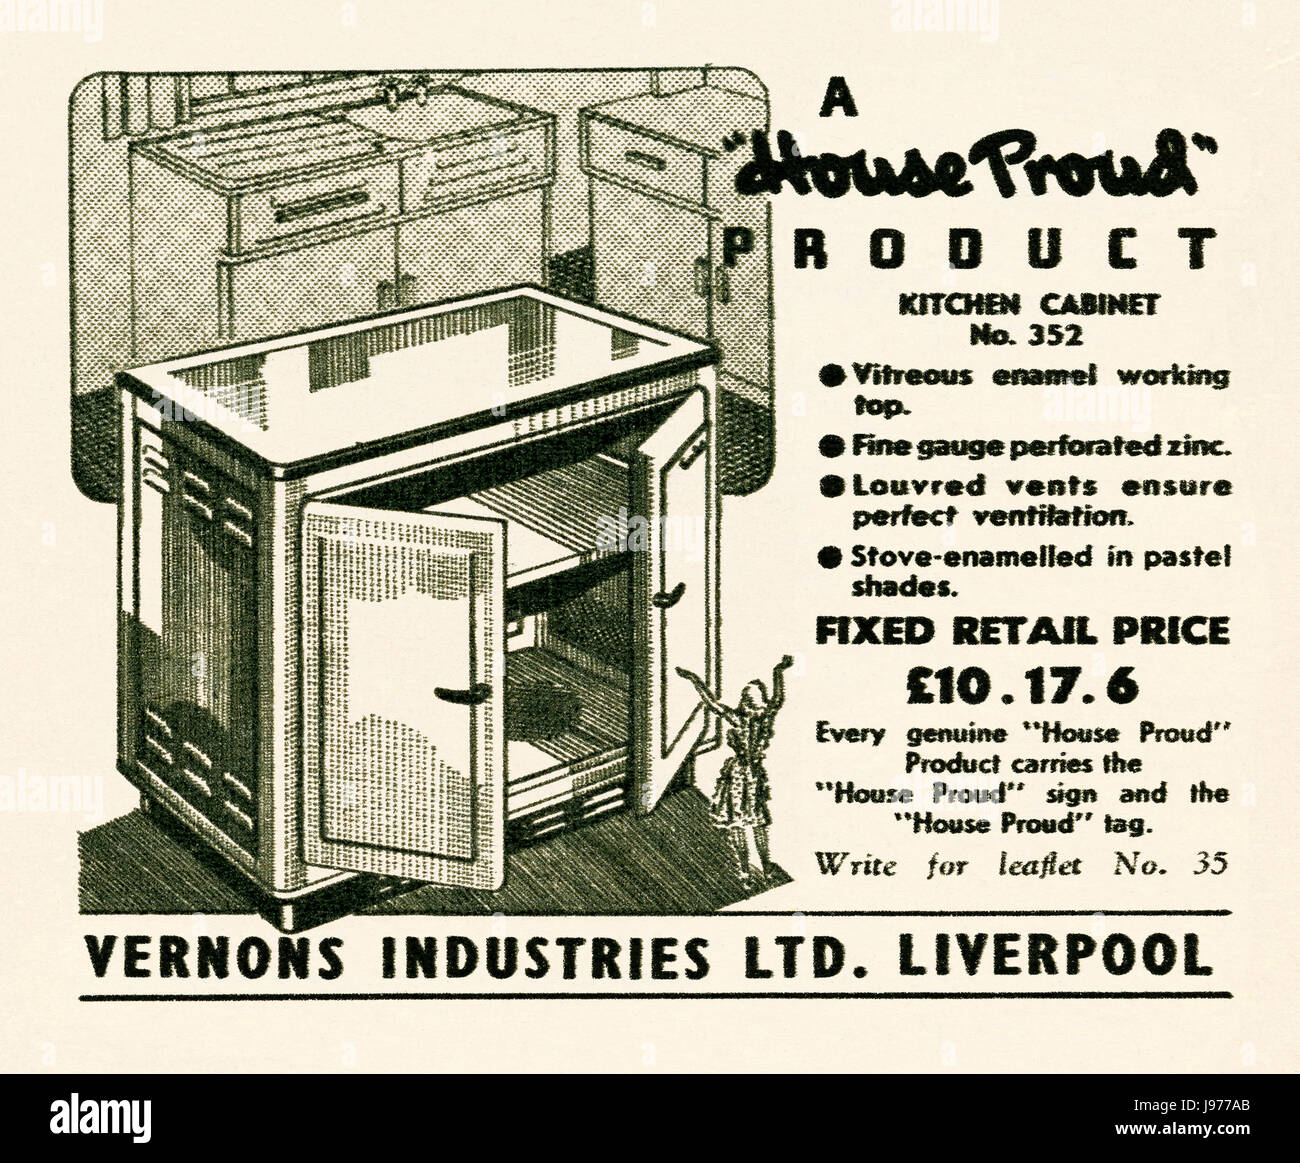 an advert for a house proud kitchen cabinet made by vernons of liverpool   it appeared in a magazine published in the uk in 1947 an advert for a house proud kitchen cabinet made by vernons of      rh   alamy com